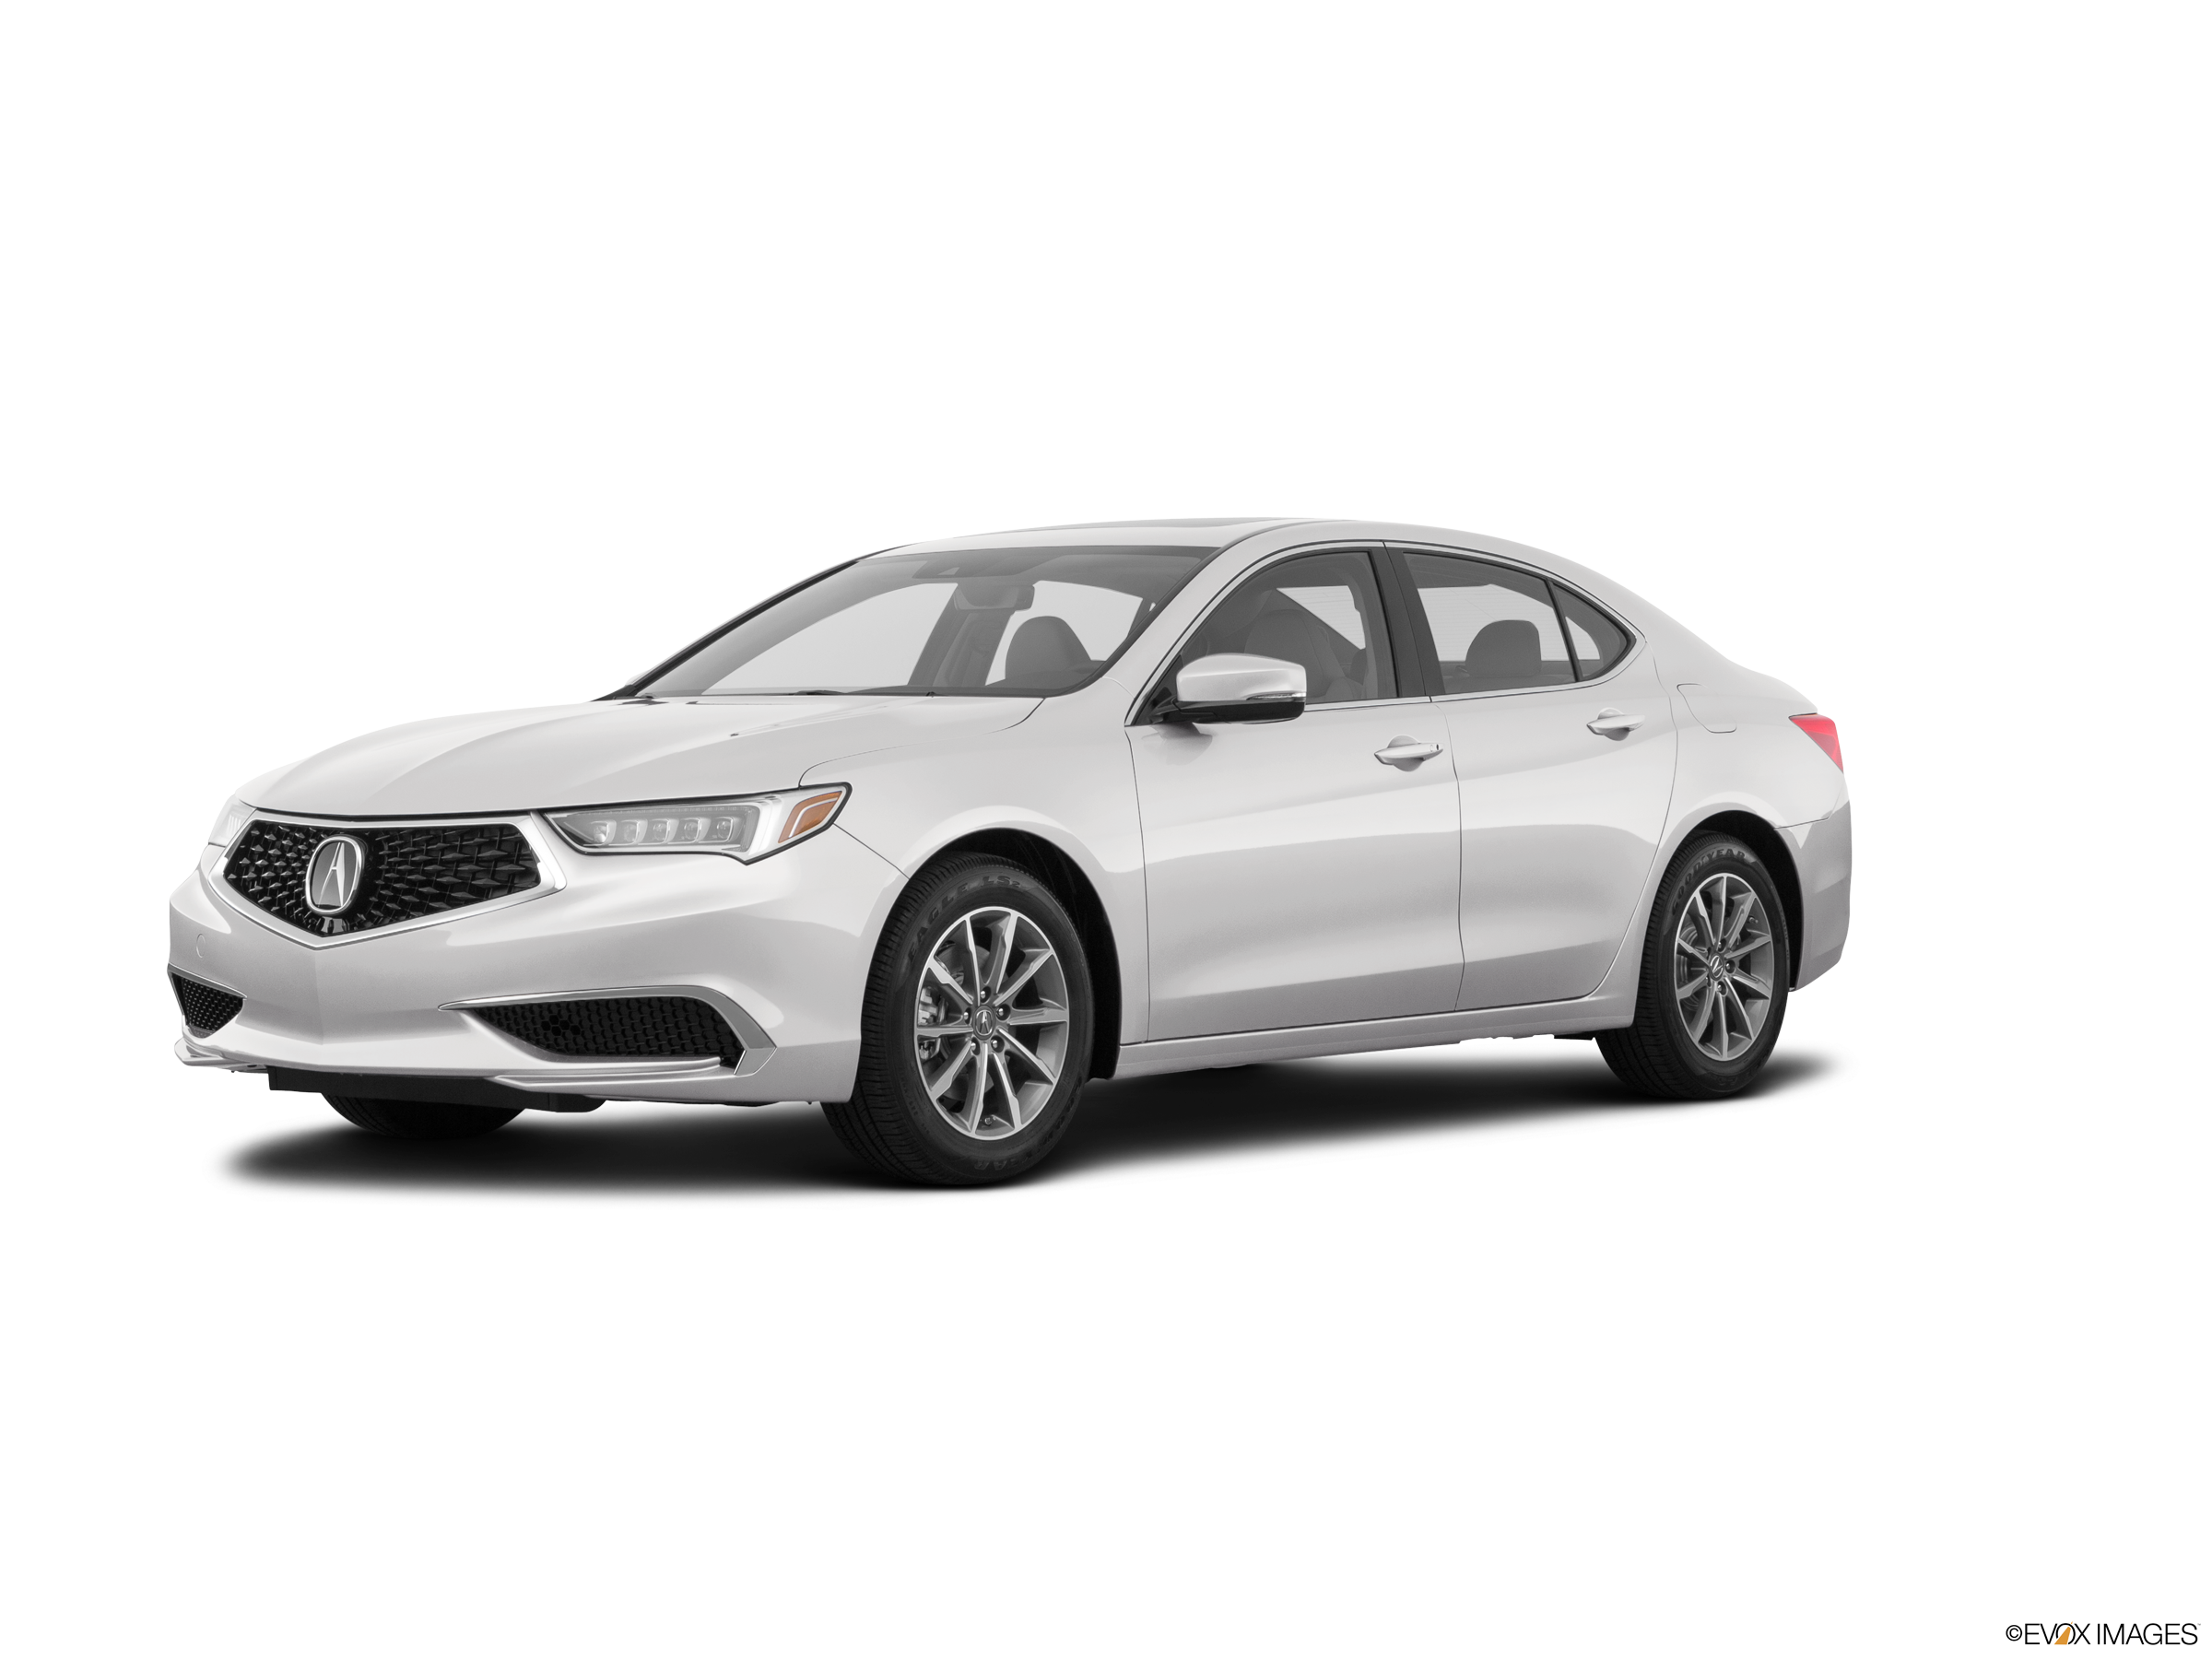 Top Expert Rated Luxury Vehicles of 2019 - 2019 Acura TLX